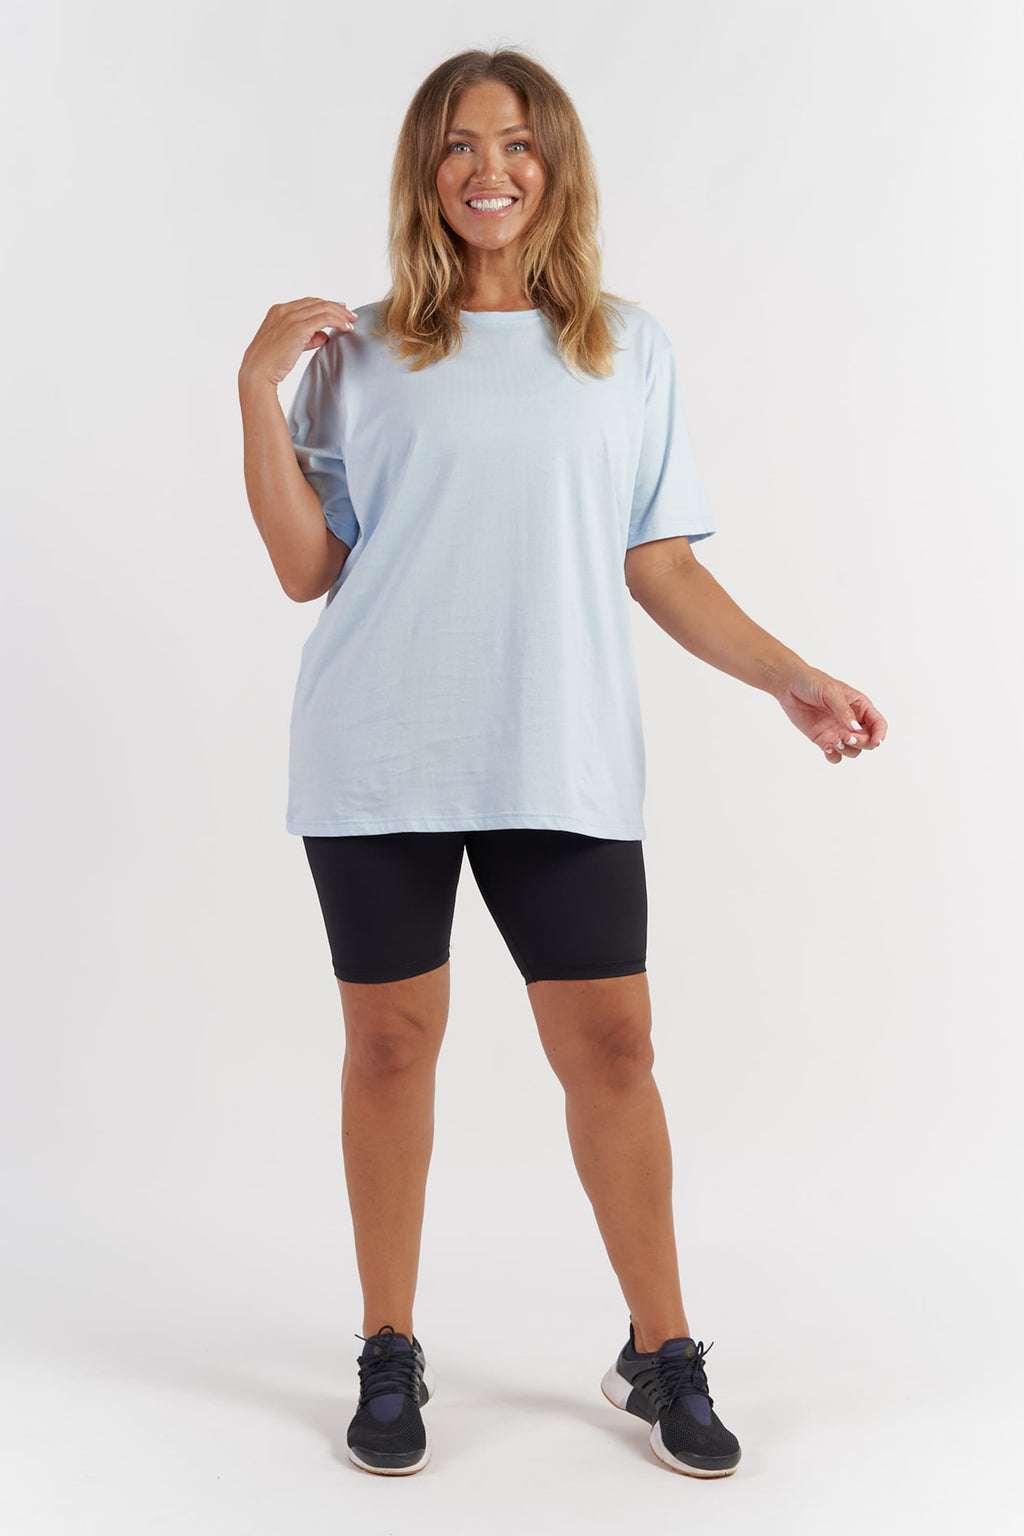 activewear-oversized-tee-pale-blue-large-front